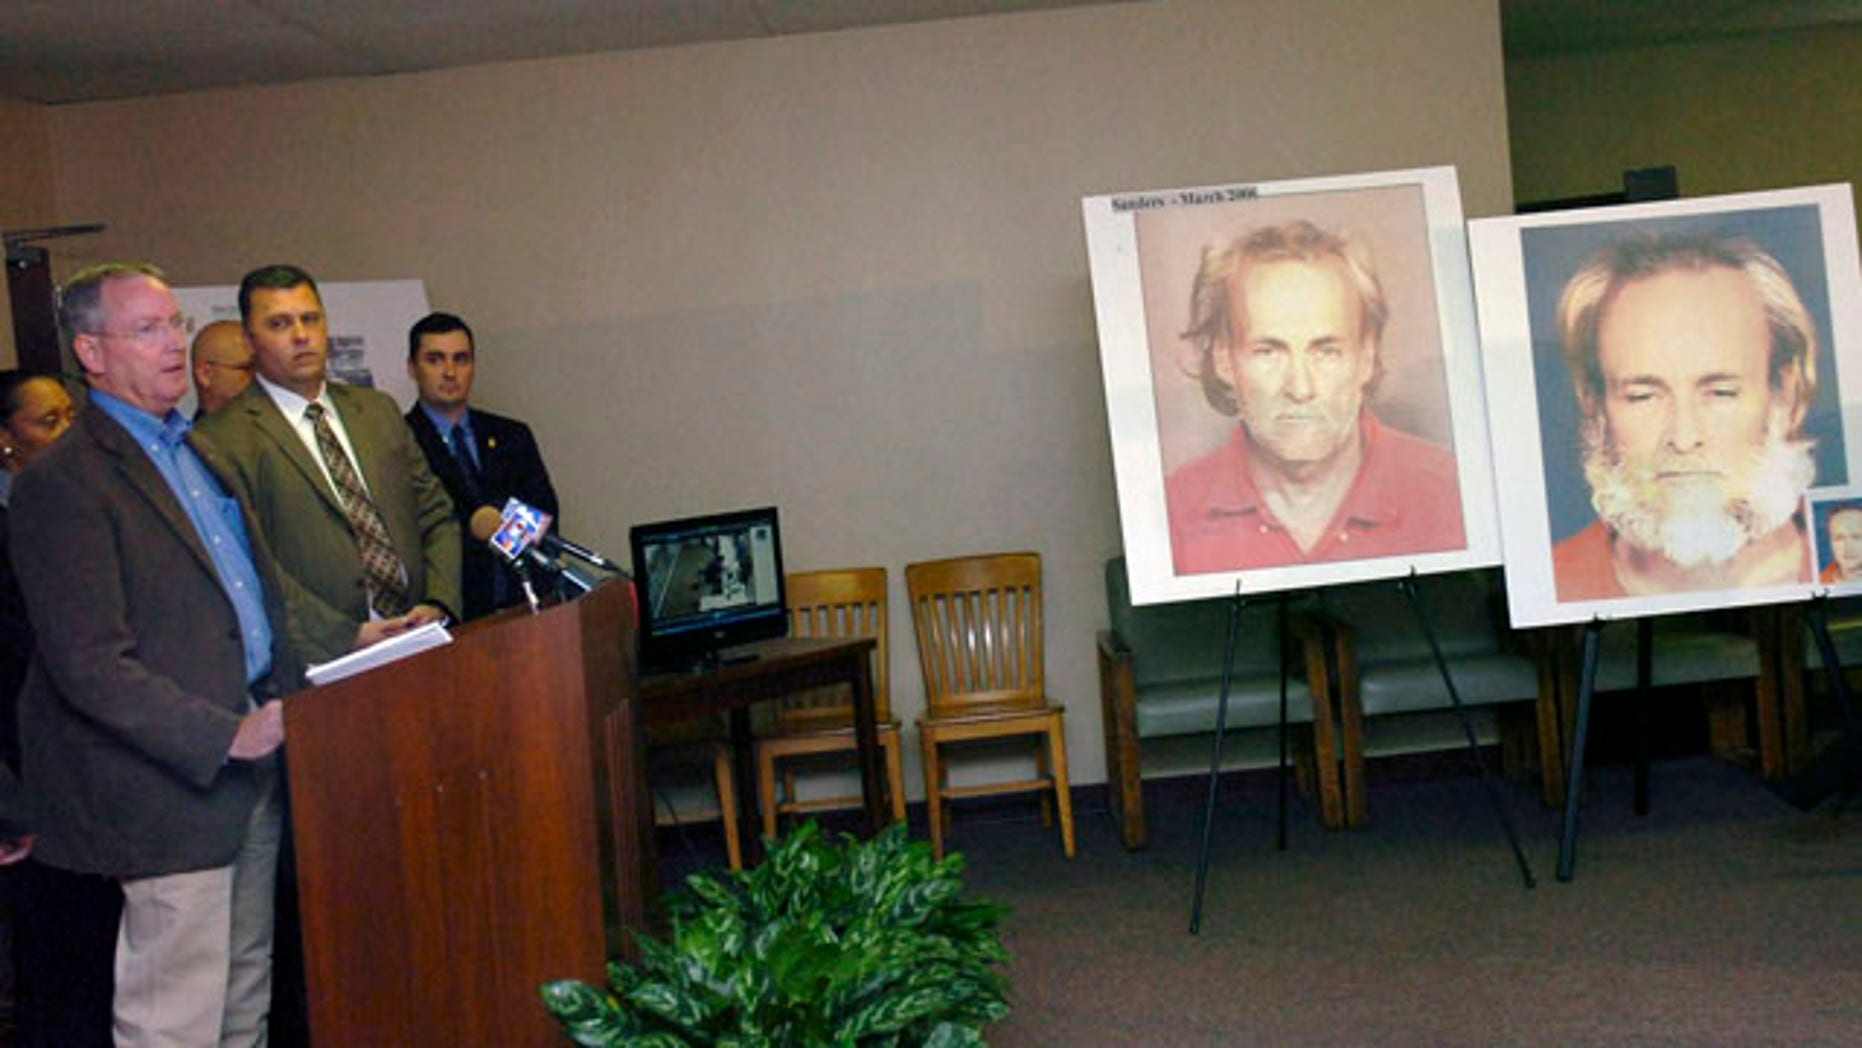 Nov. 4: Catahoula Parish Sheriff James Kelly, left, and members of the Federal Bureau of Investigation and the U.S. Marshals address the media concerning the case of Lexis Kaye Roberts in Alexandria, La.